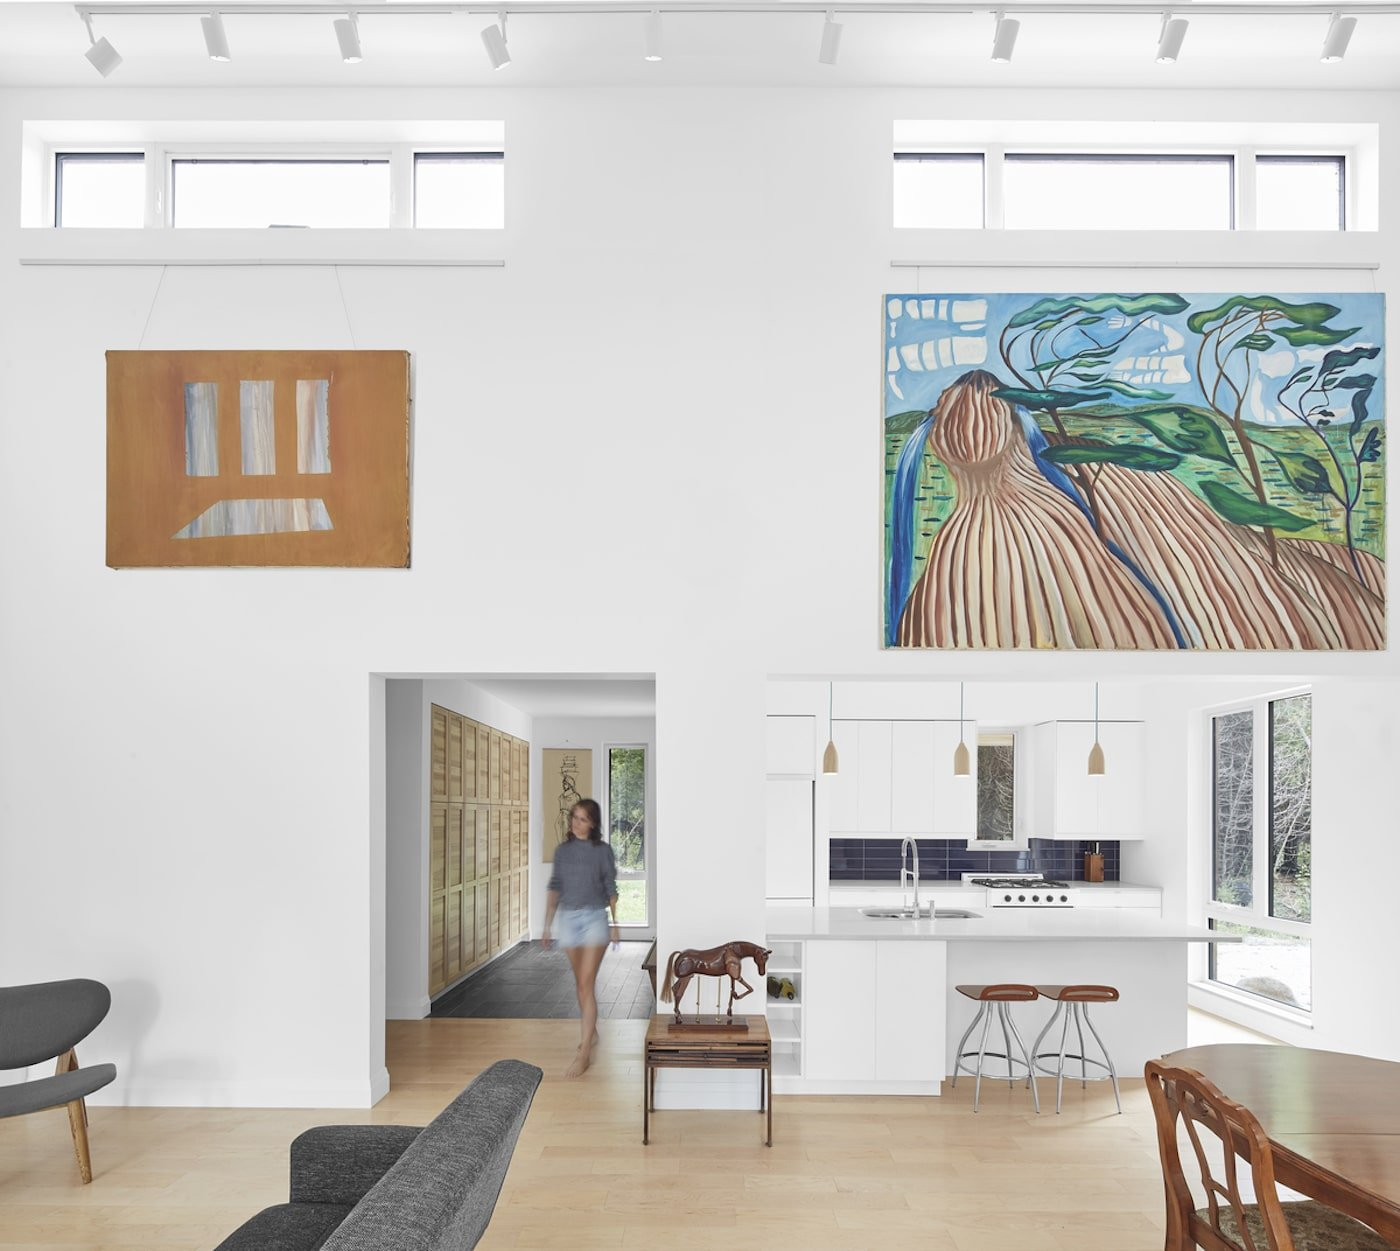 Woman walking through lounge room with art on walls of off grid house